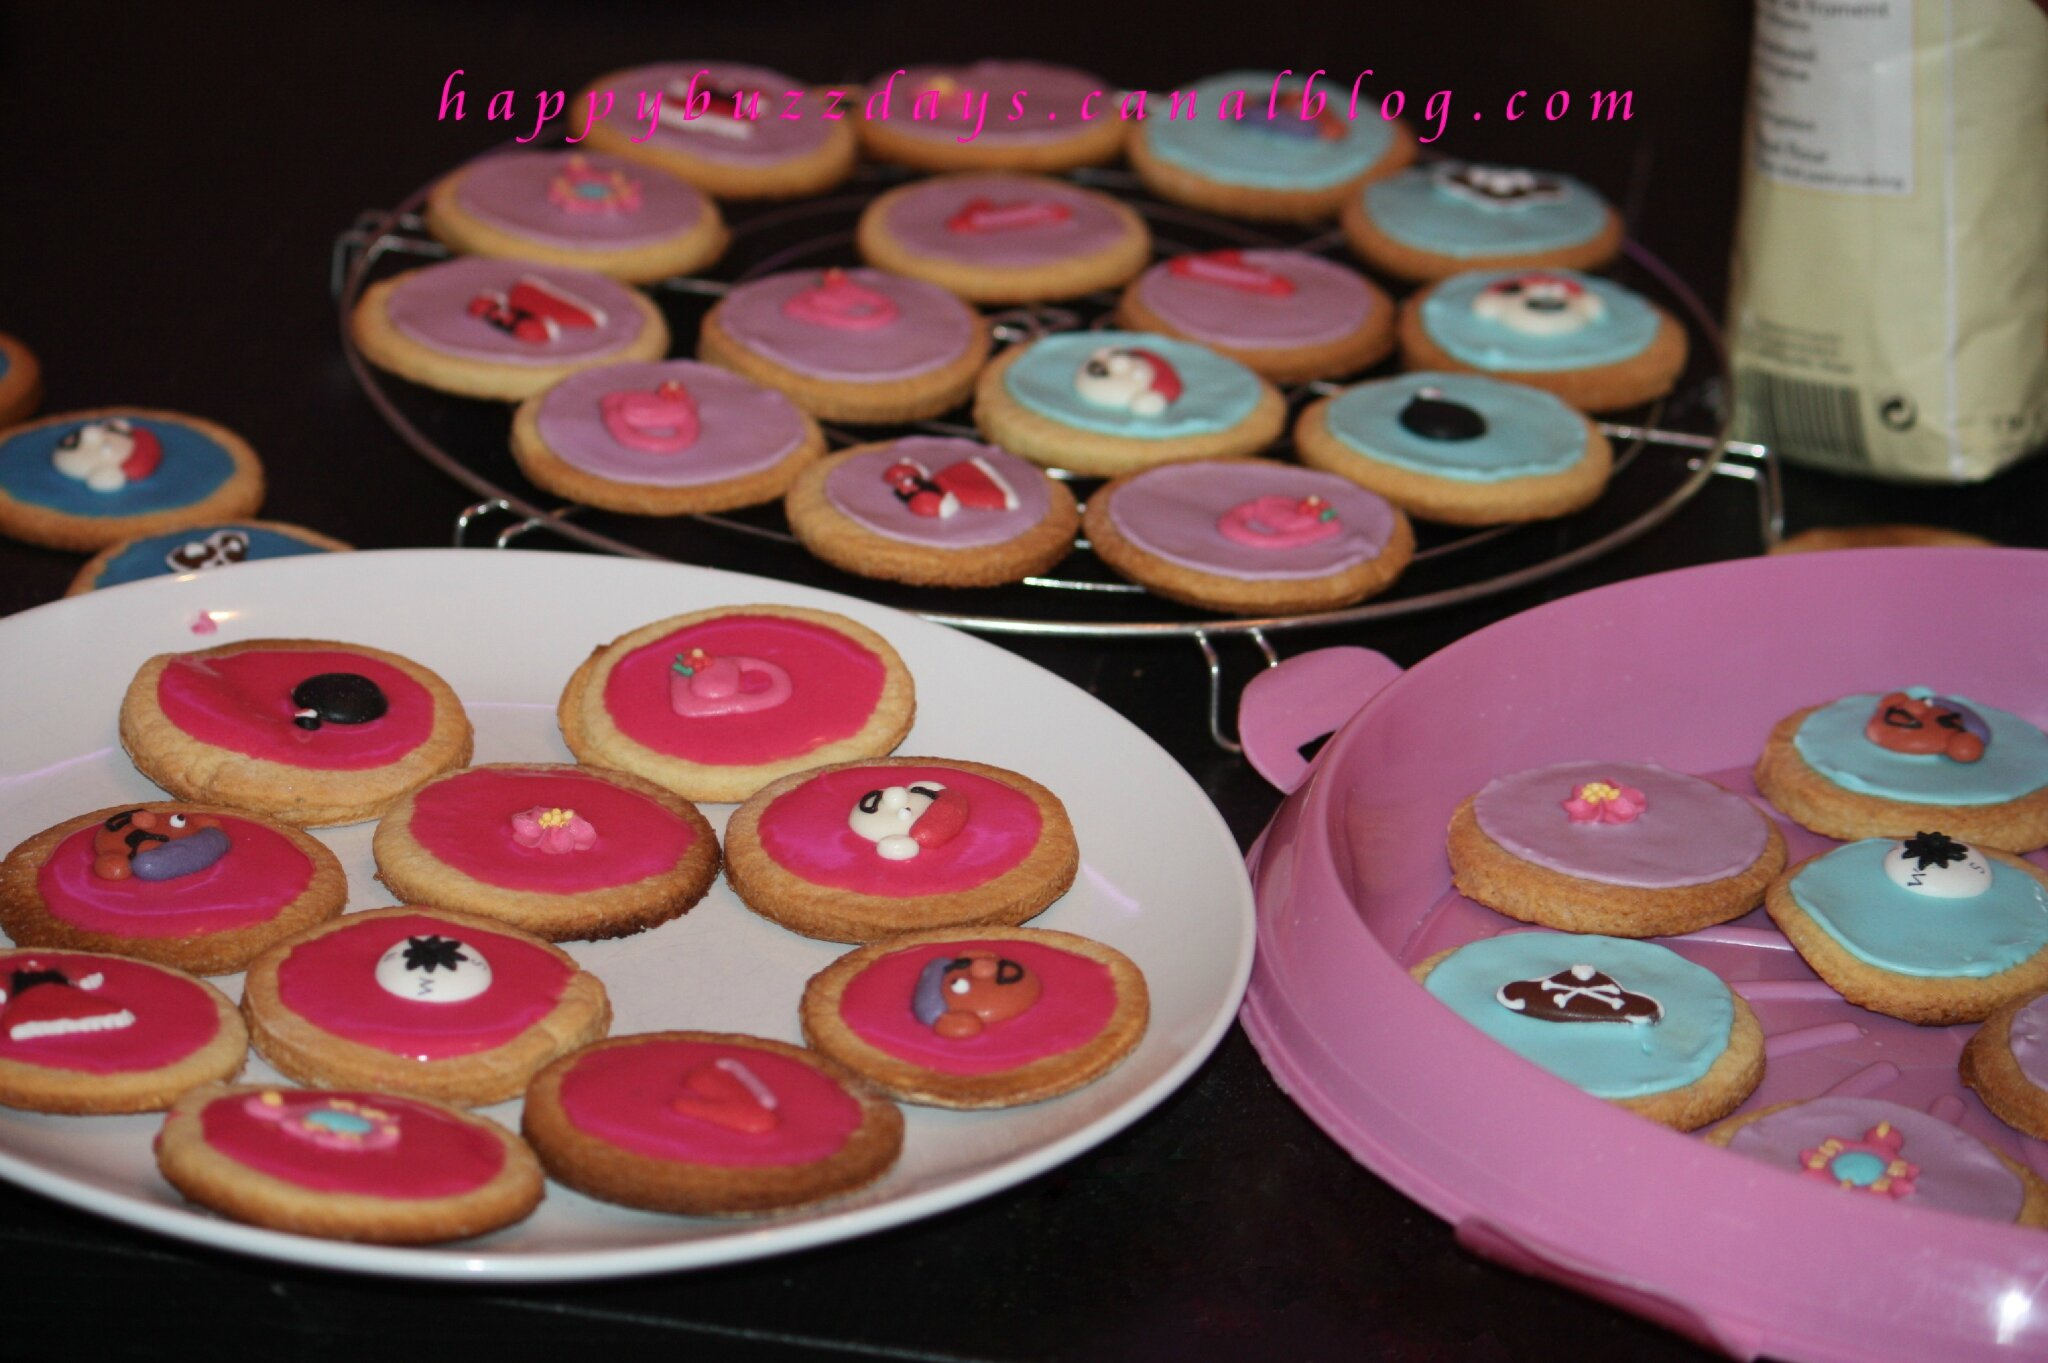 Biscuits Sables Avec Glacage Royal Happybuzzdays